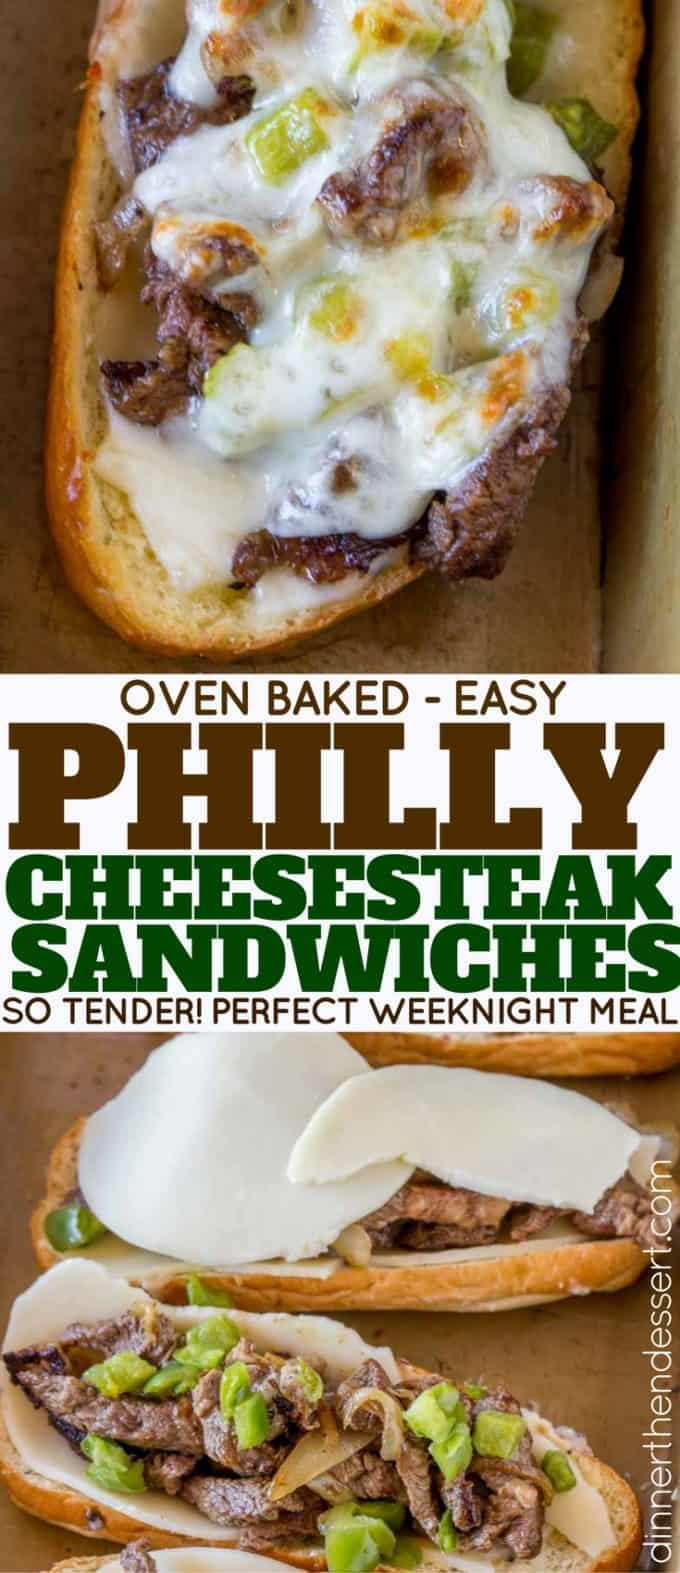 Oven Baked Philly Cheesesteaks are the PERFECT weeknight meal!